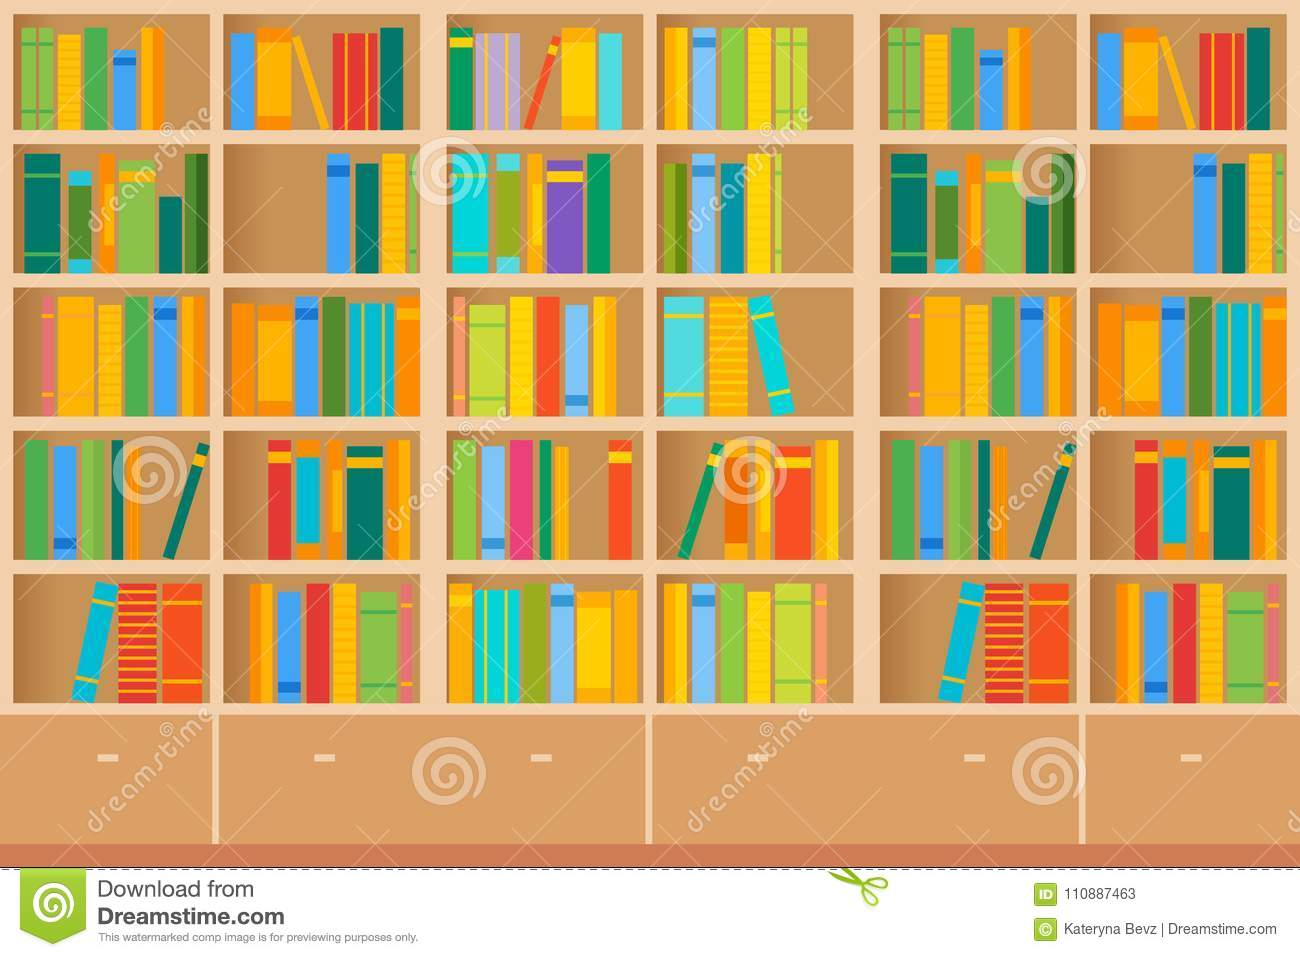 Bookshelves full of books both in the library. Vector illustration